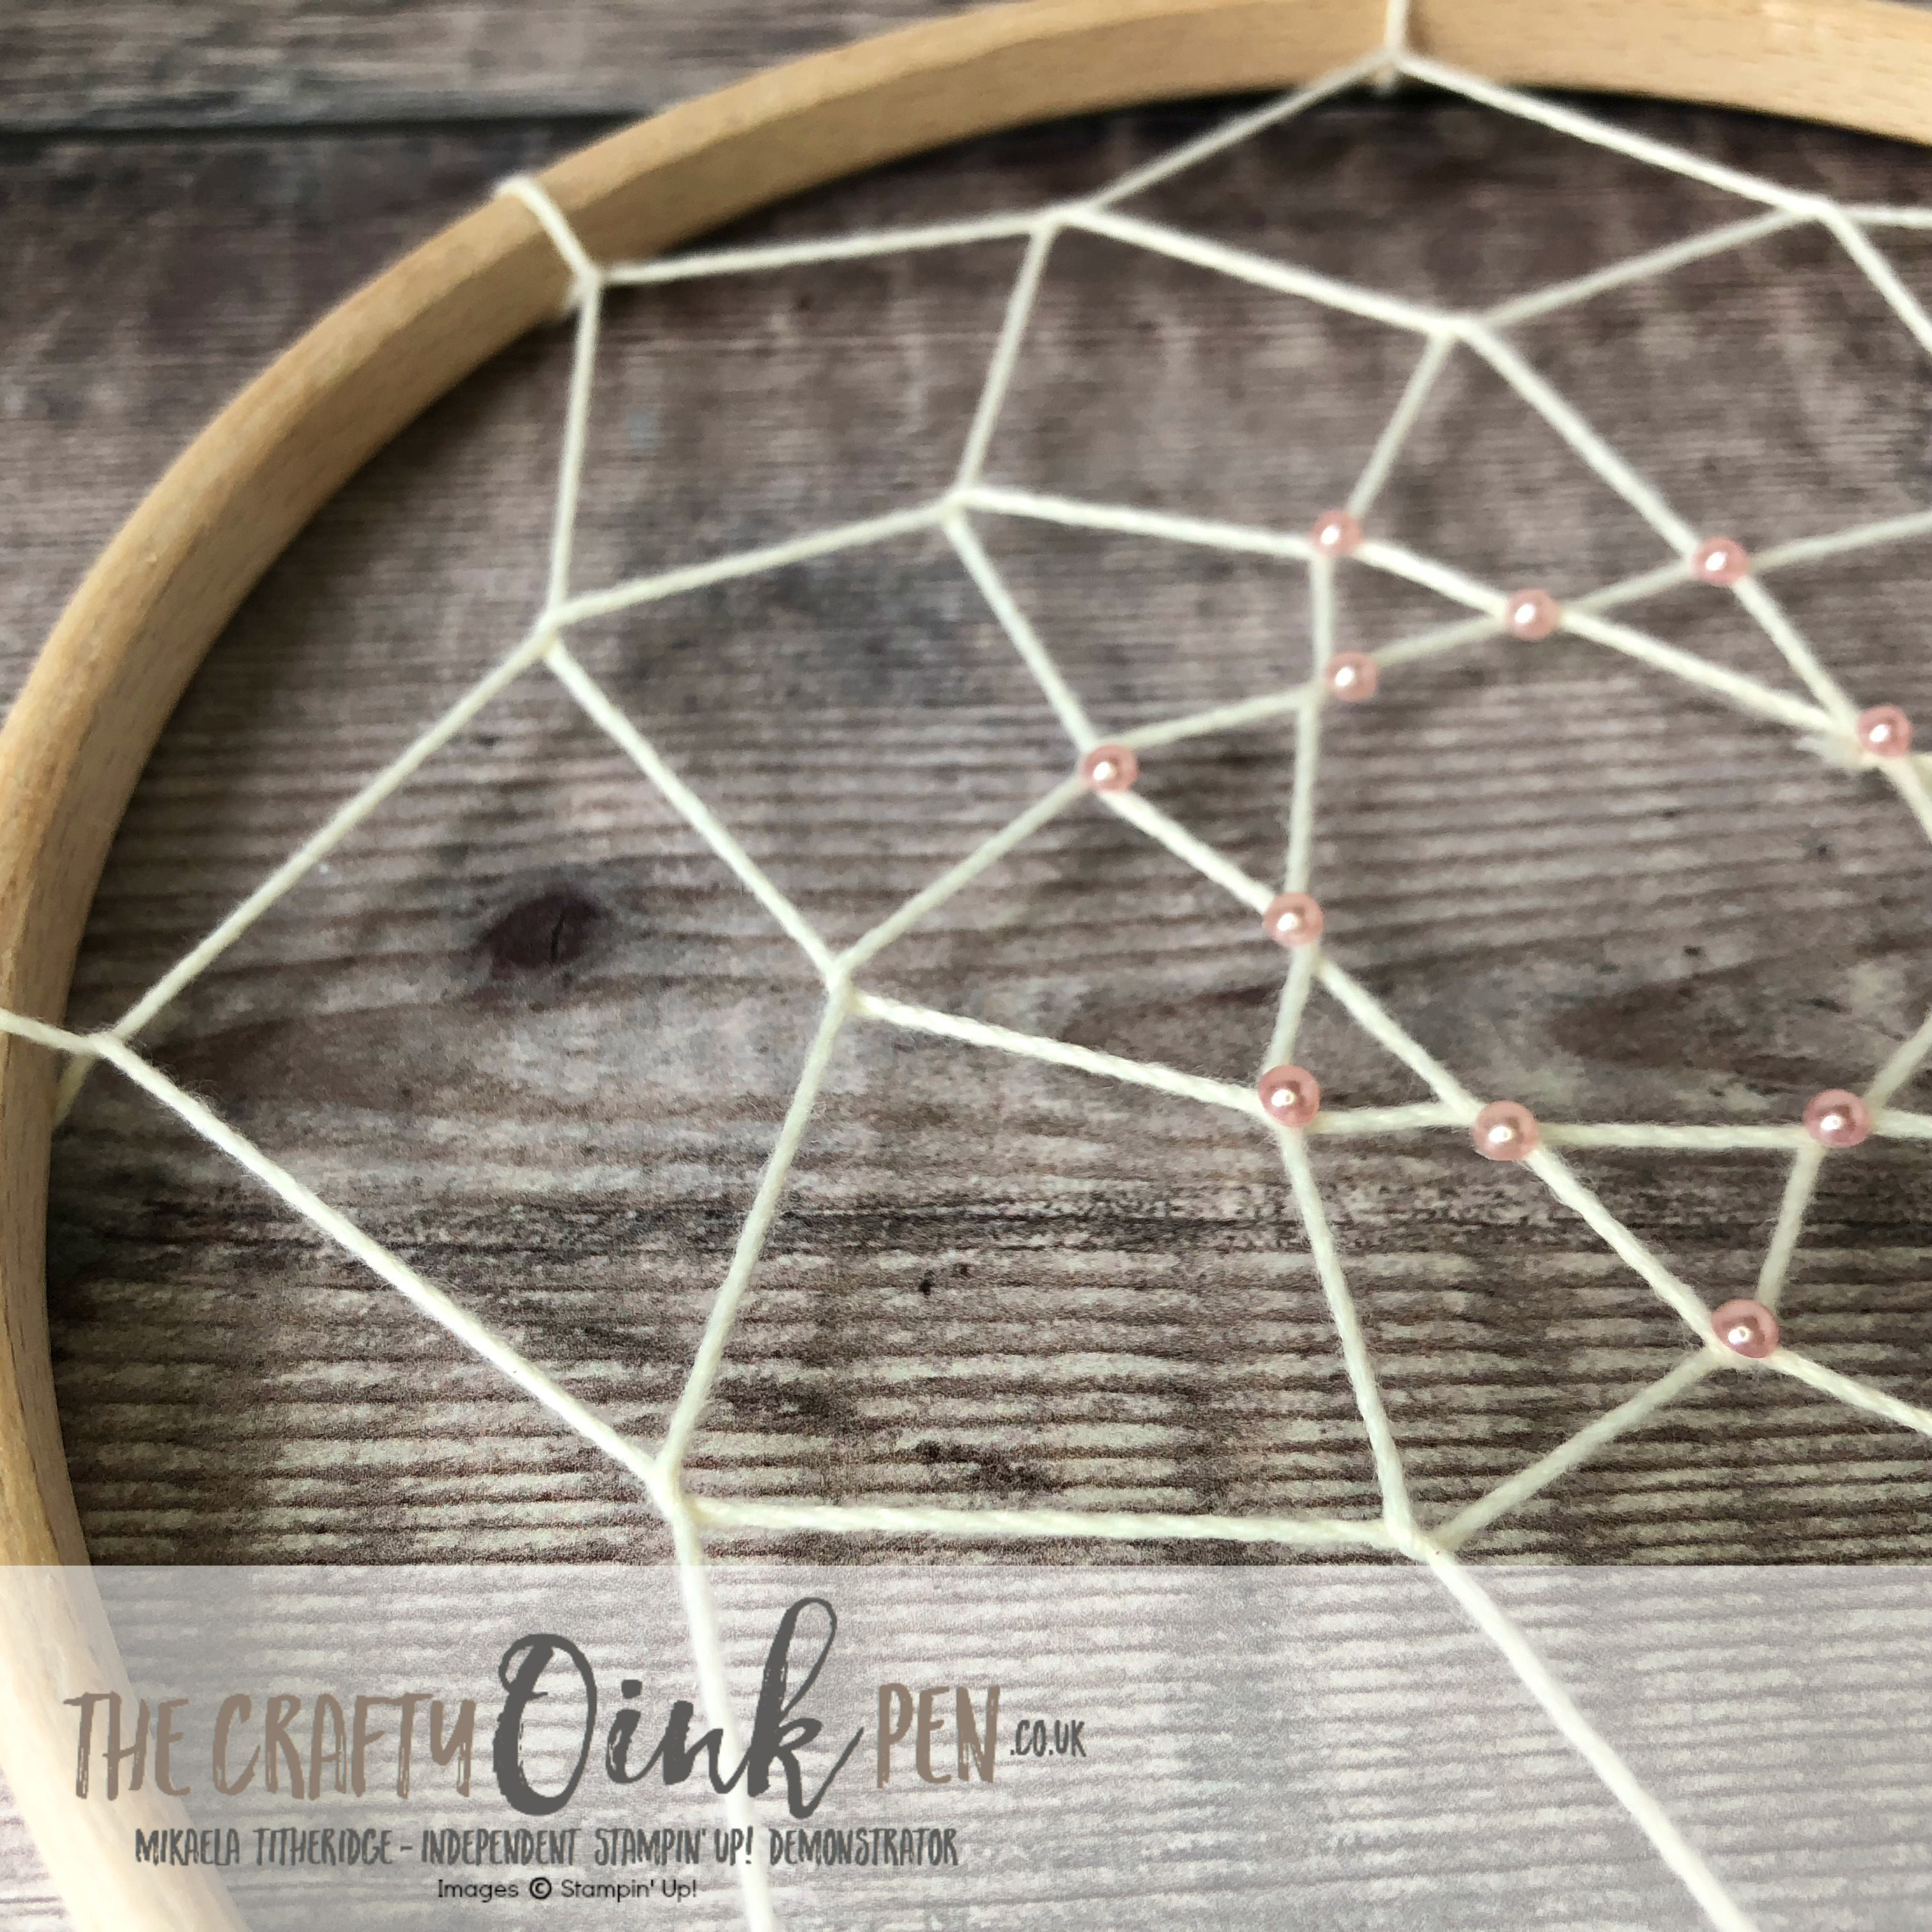 Chase your Dreams with this Dream Catcher by Mikaela Titheridge, #6UK Independent Stampin' Up! Demonstrator, The Crafty oINK Pen. Supplies available through my online store 24/7